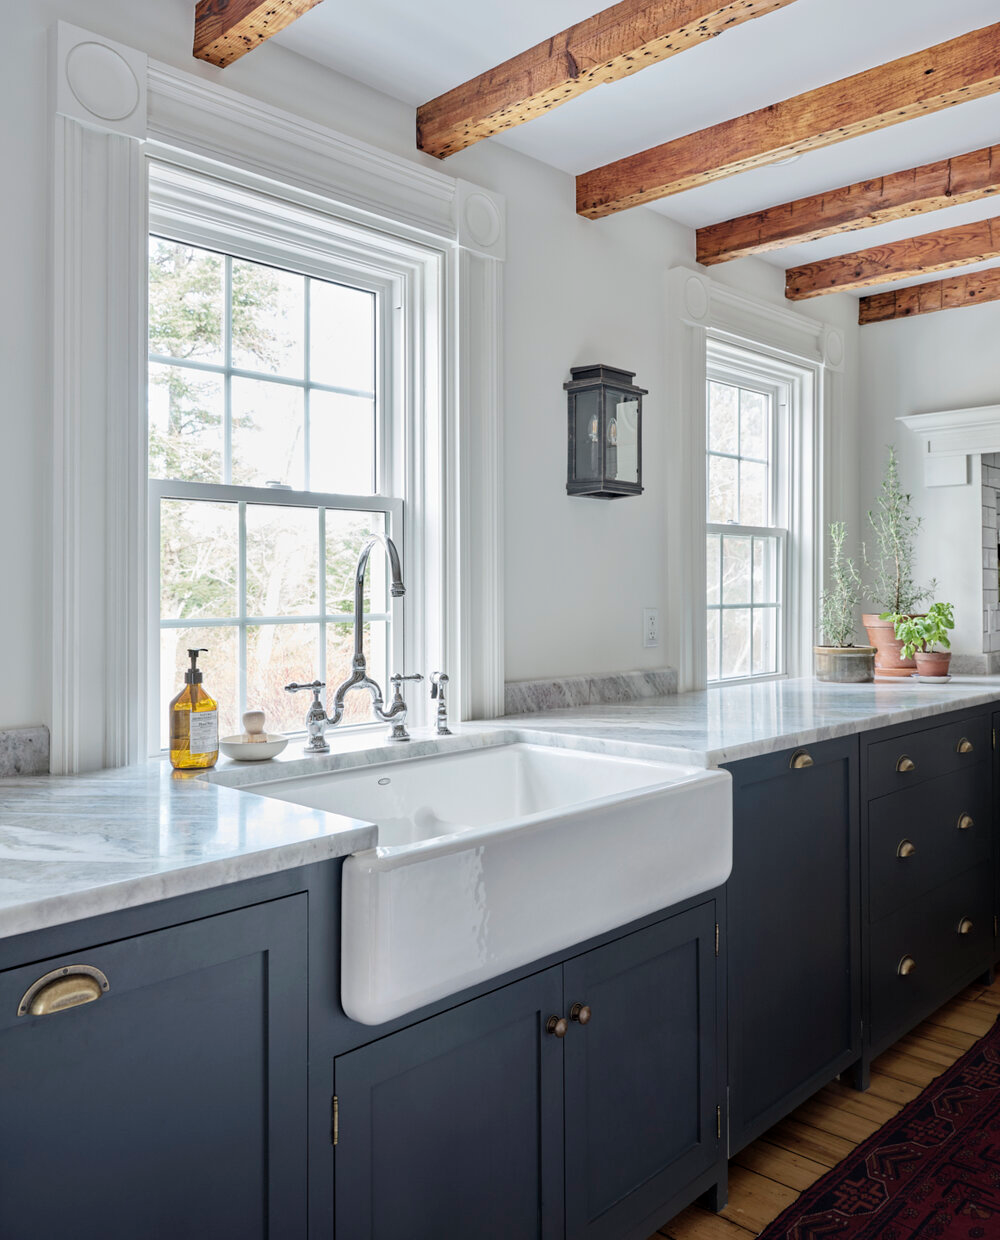 Before & After: Dutch Colonial Kitchen